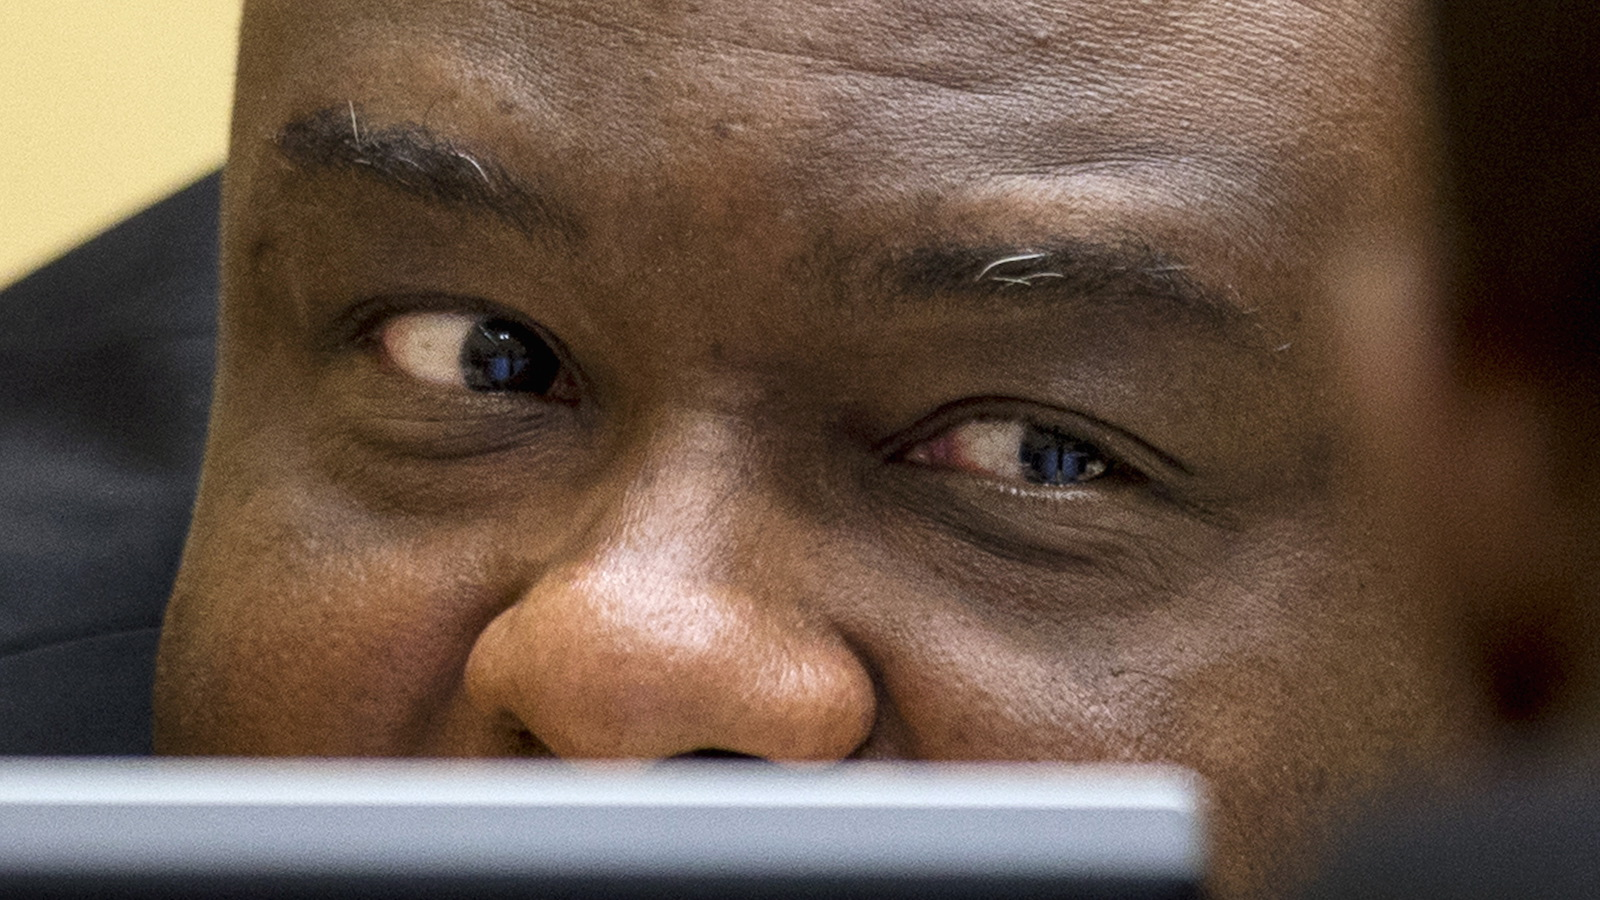 Former Congo vice-president Jean-Pierre Bemba looks up when sitting in the courtroom of the ICC in The Hague